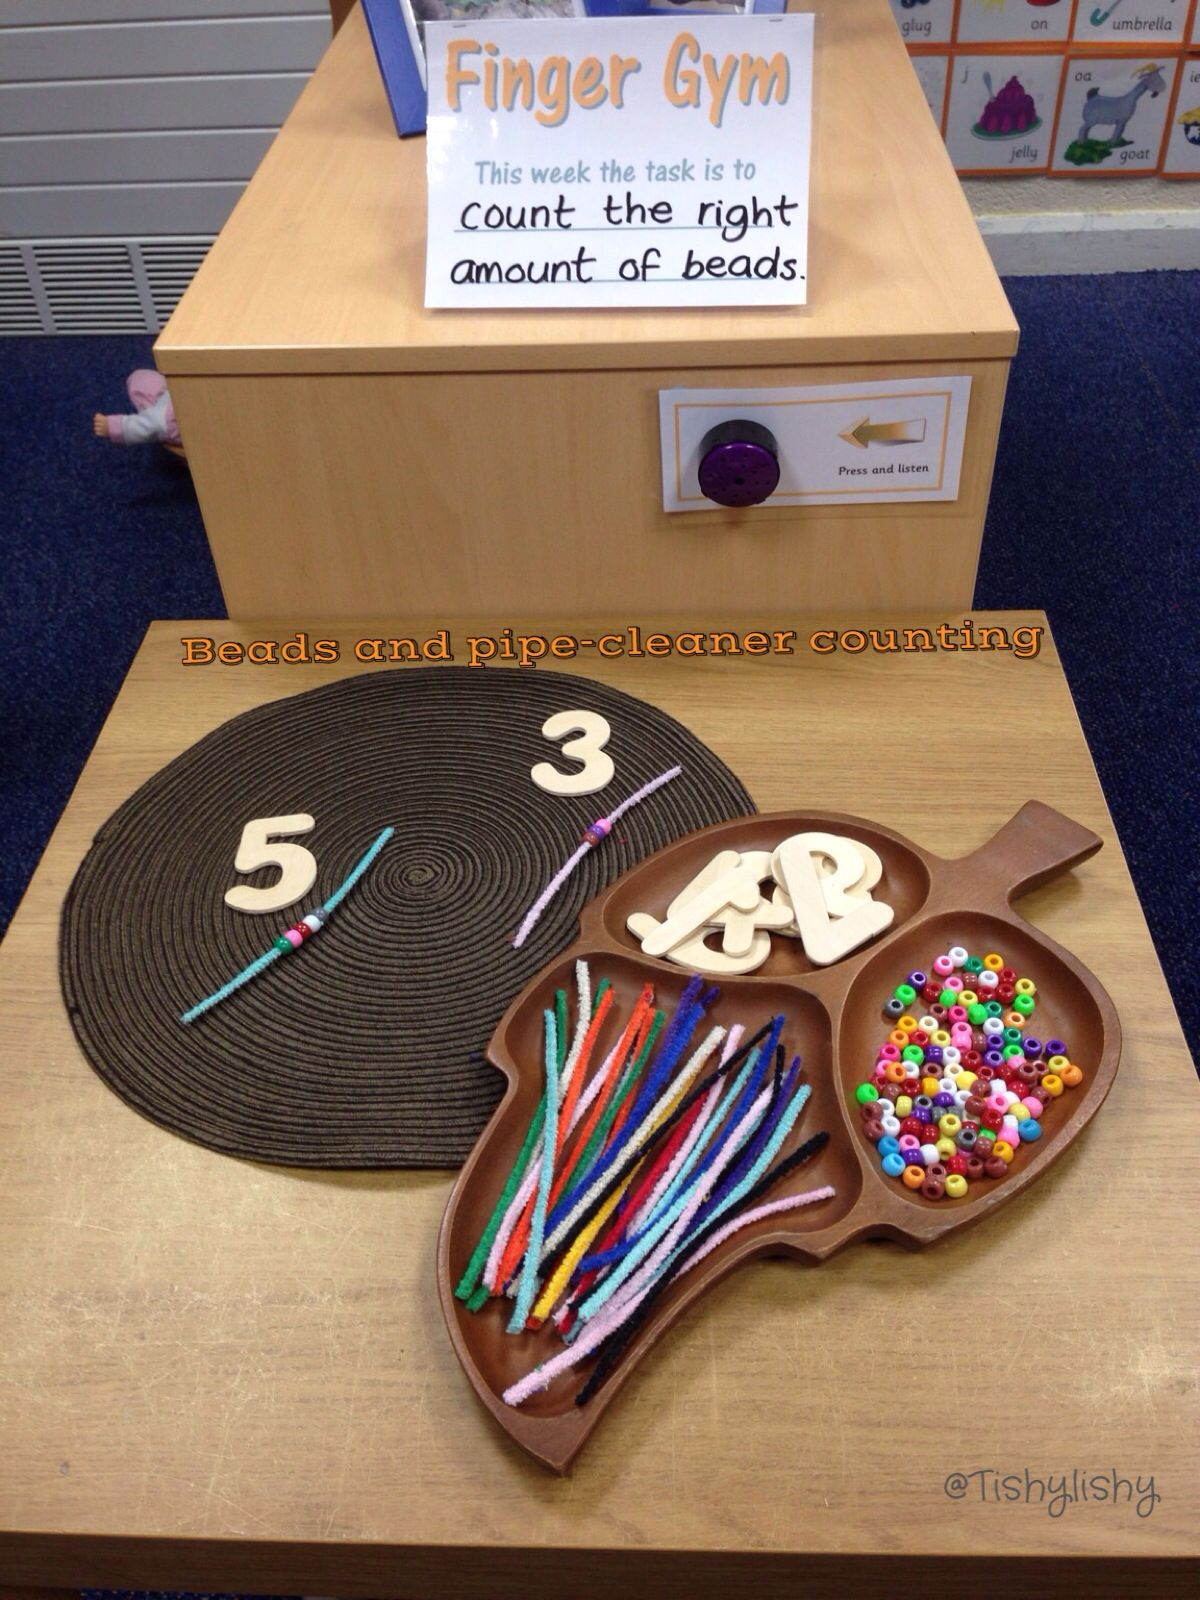 Bead and pipe cleaner counting